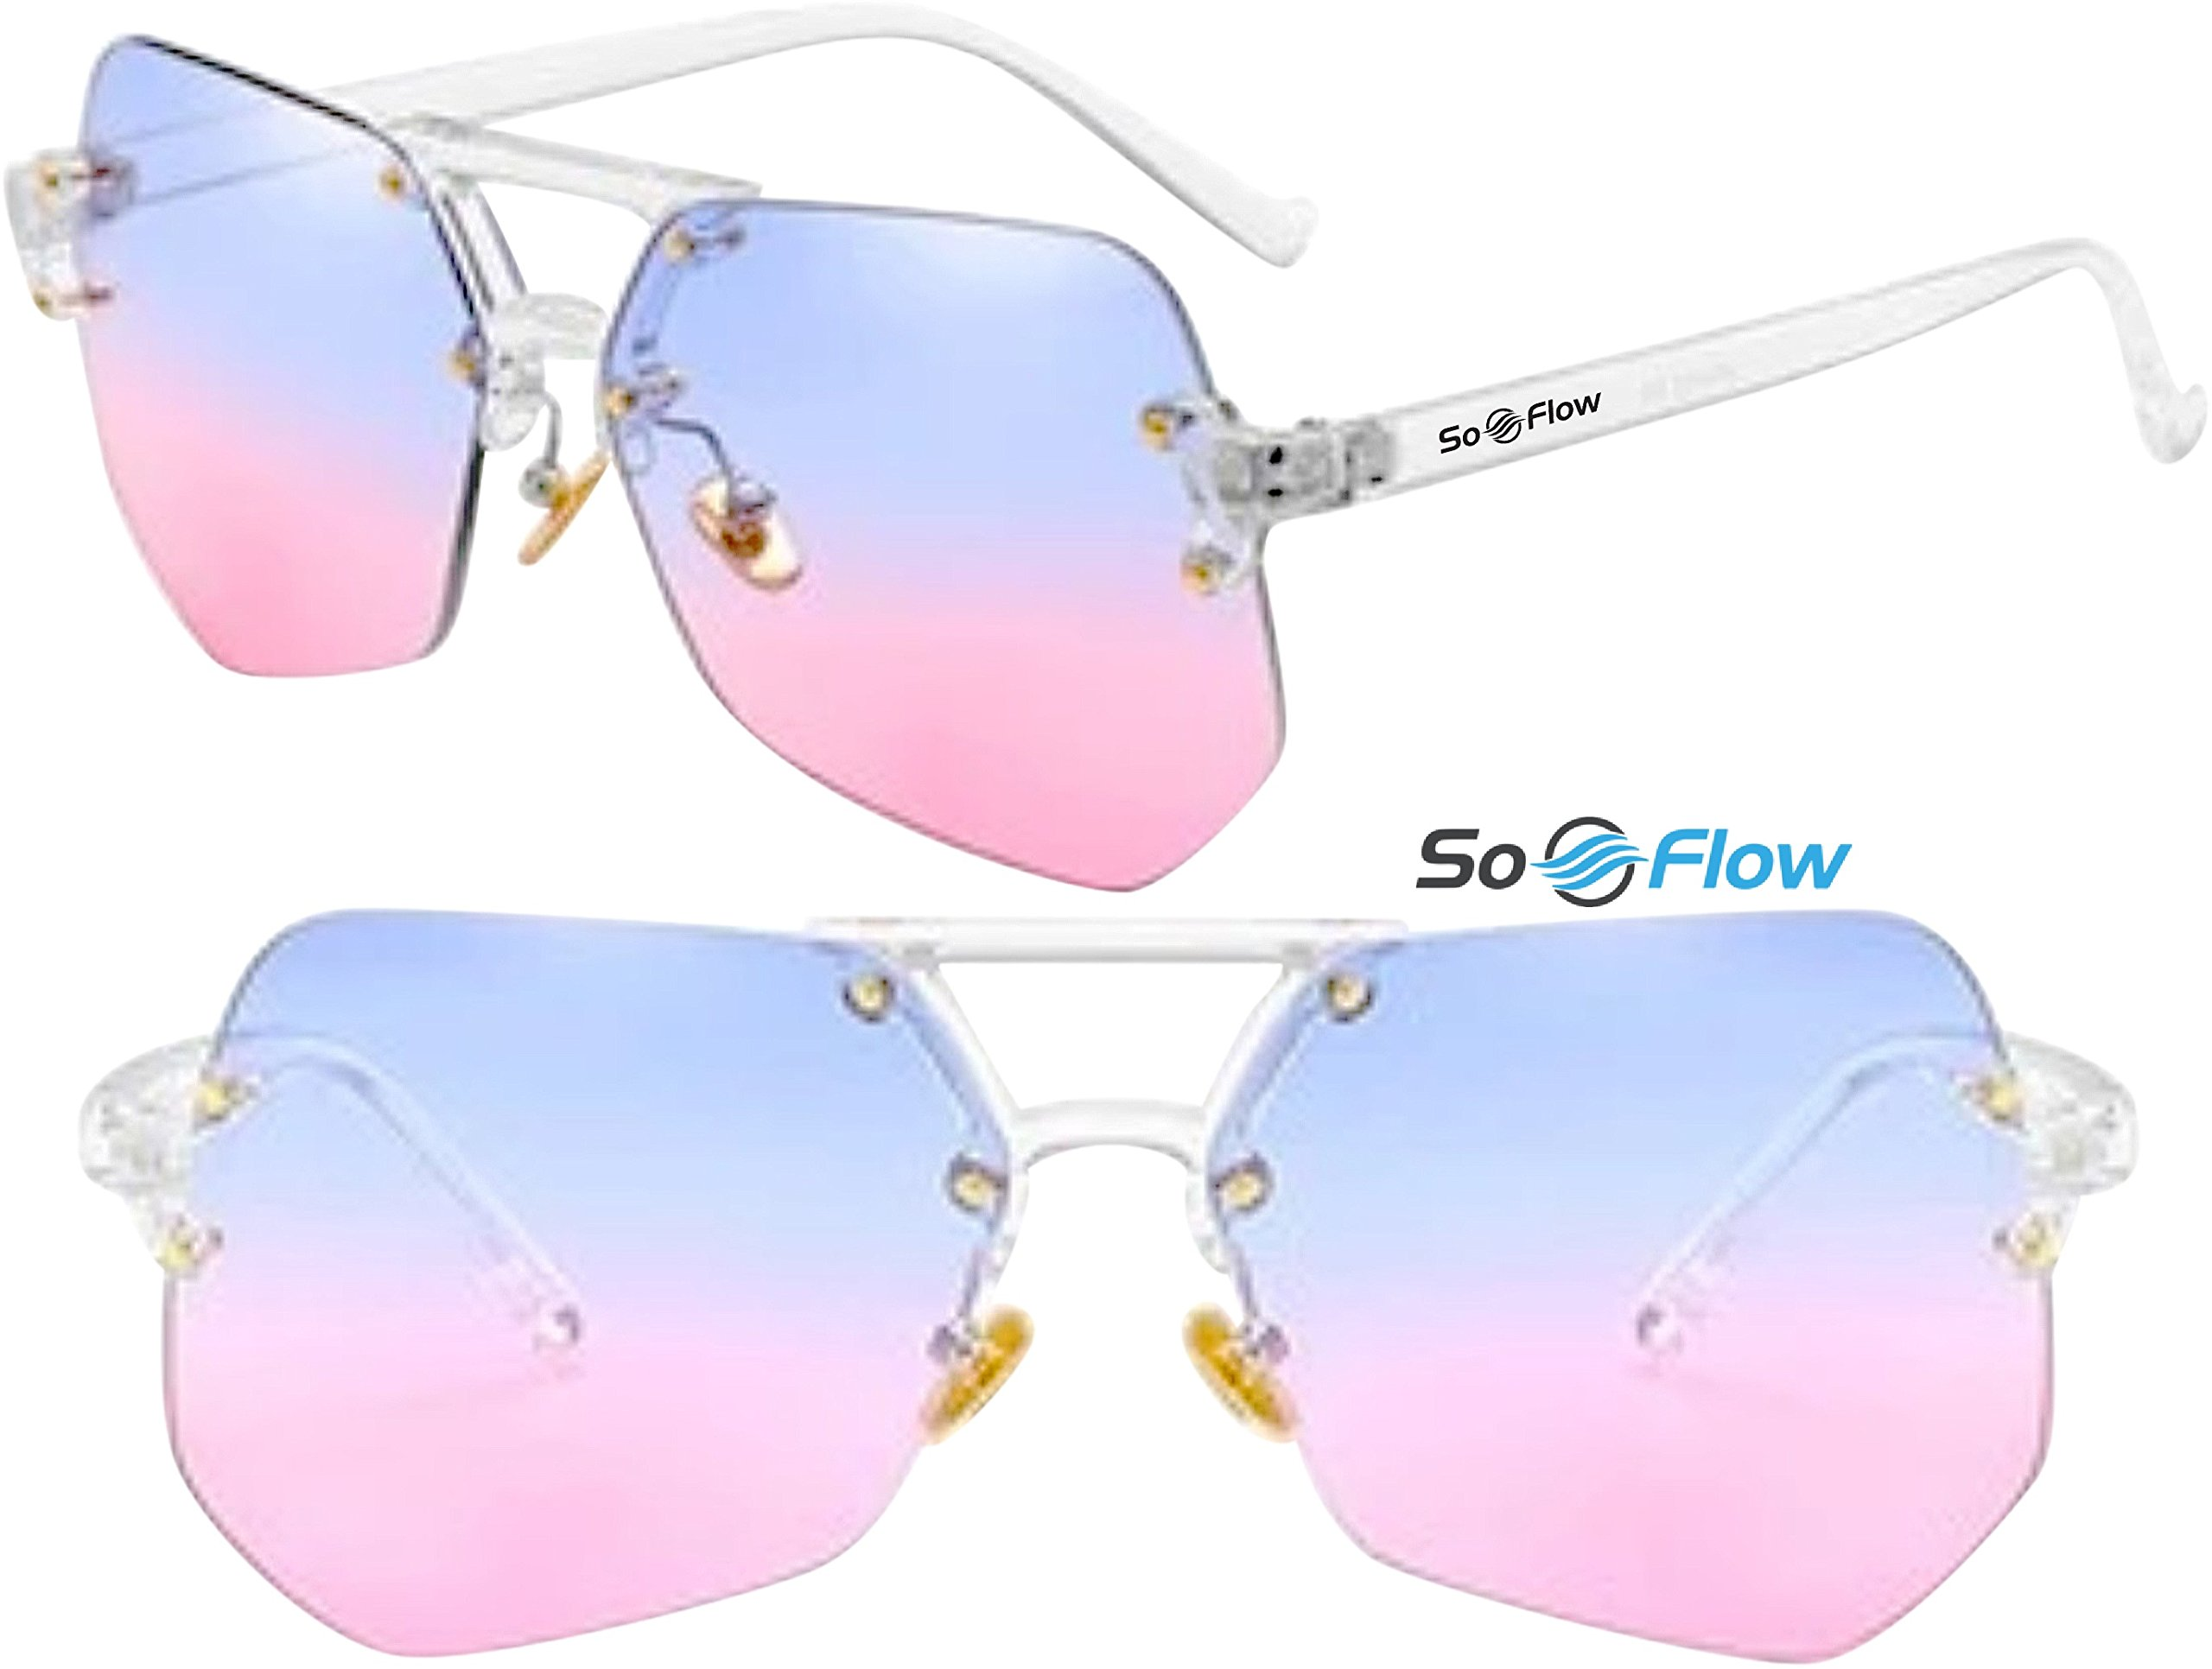 Pink and Blue Polarized Oversized Rimless Sunglasses For Women Men - Polygon - Prime UV400 Protection - Lightweight - Blue and Pink Lens Polarized Sunglasses - Large Rimless Oversized Sunglasses